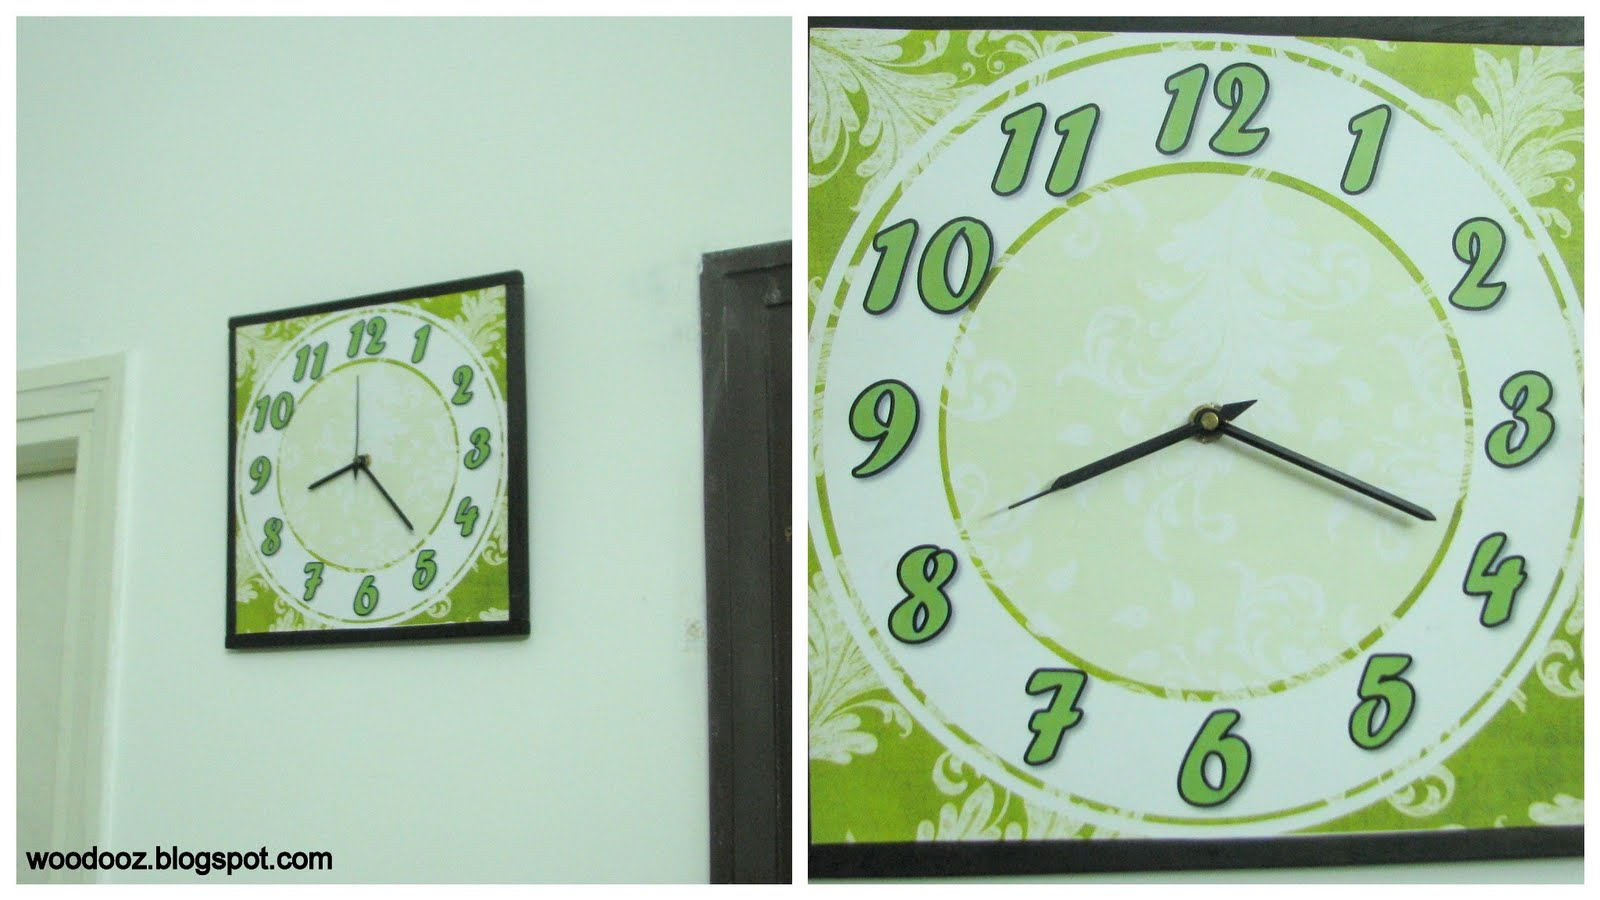 Wall Clock Design Template : Diy green wall clock with template indian woodworking